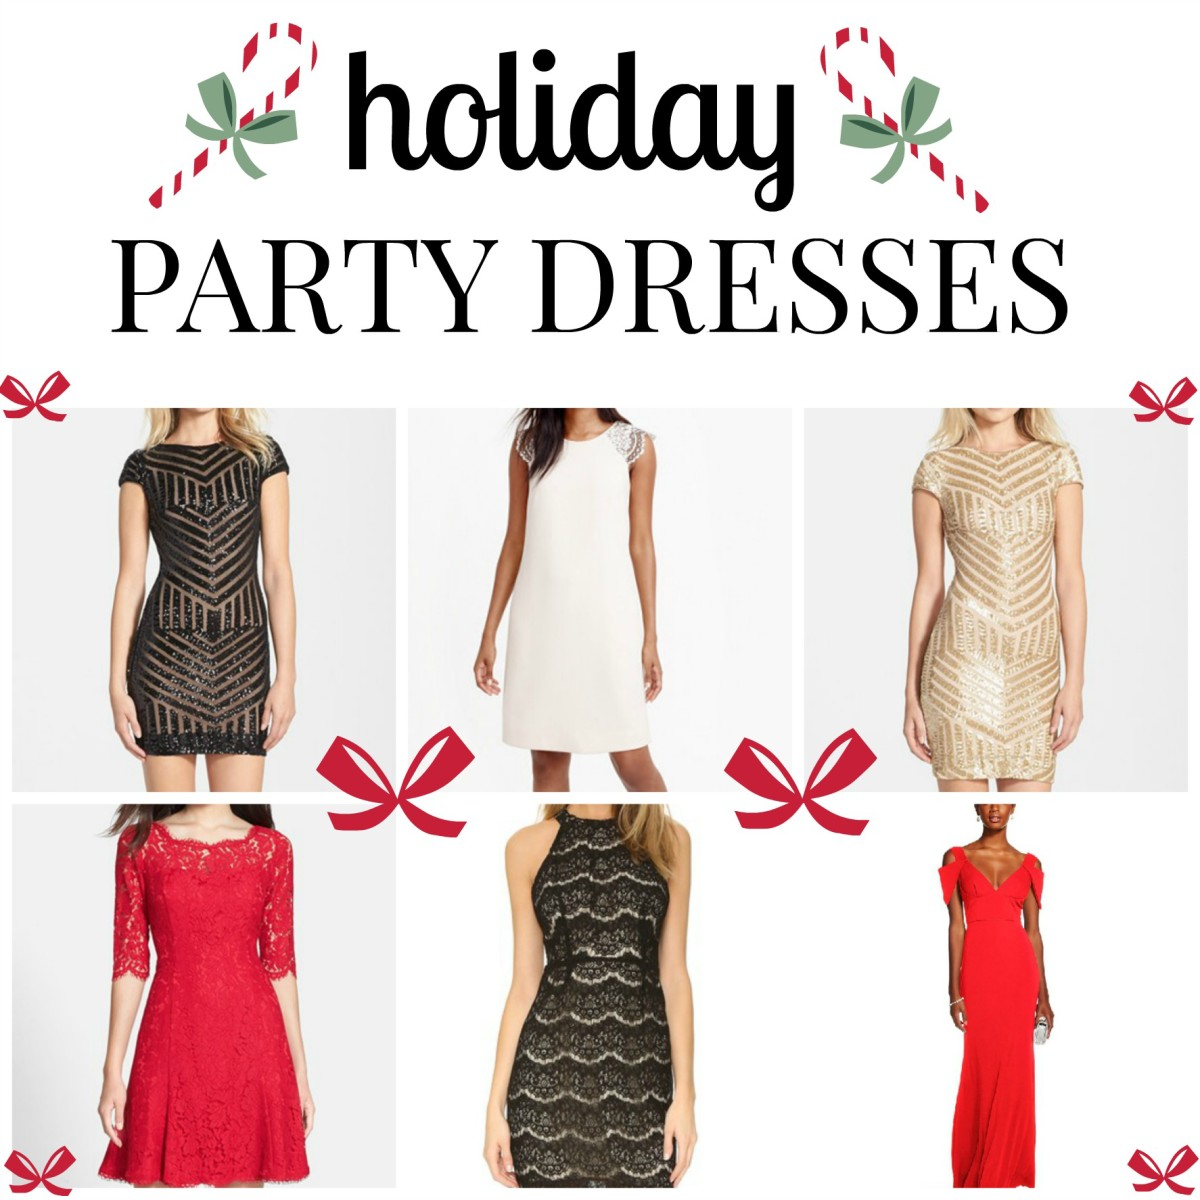 black friday deals holiday party dresses airelle snyder holiday party dresses